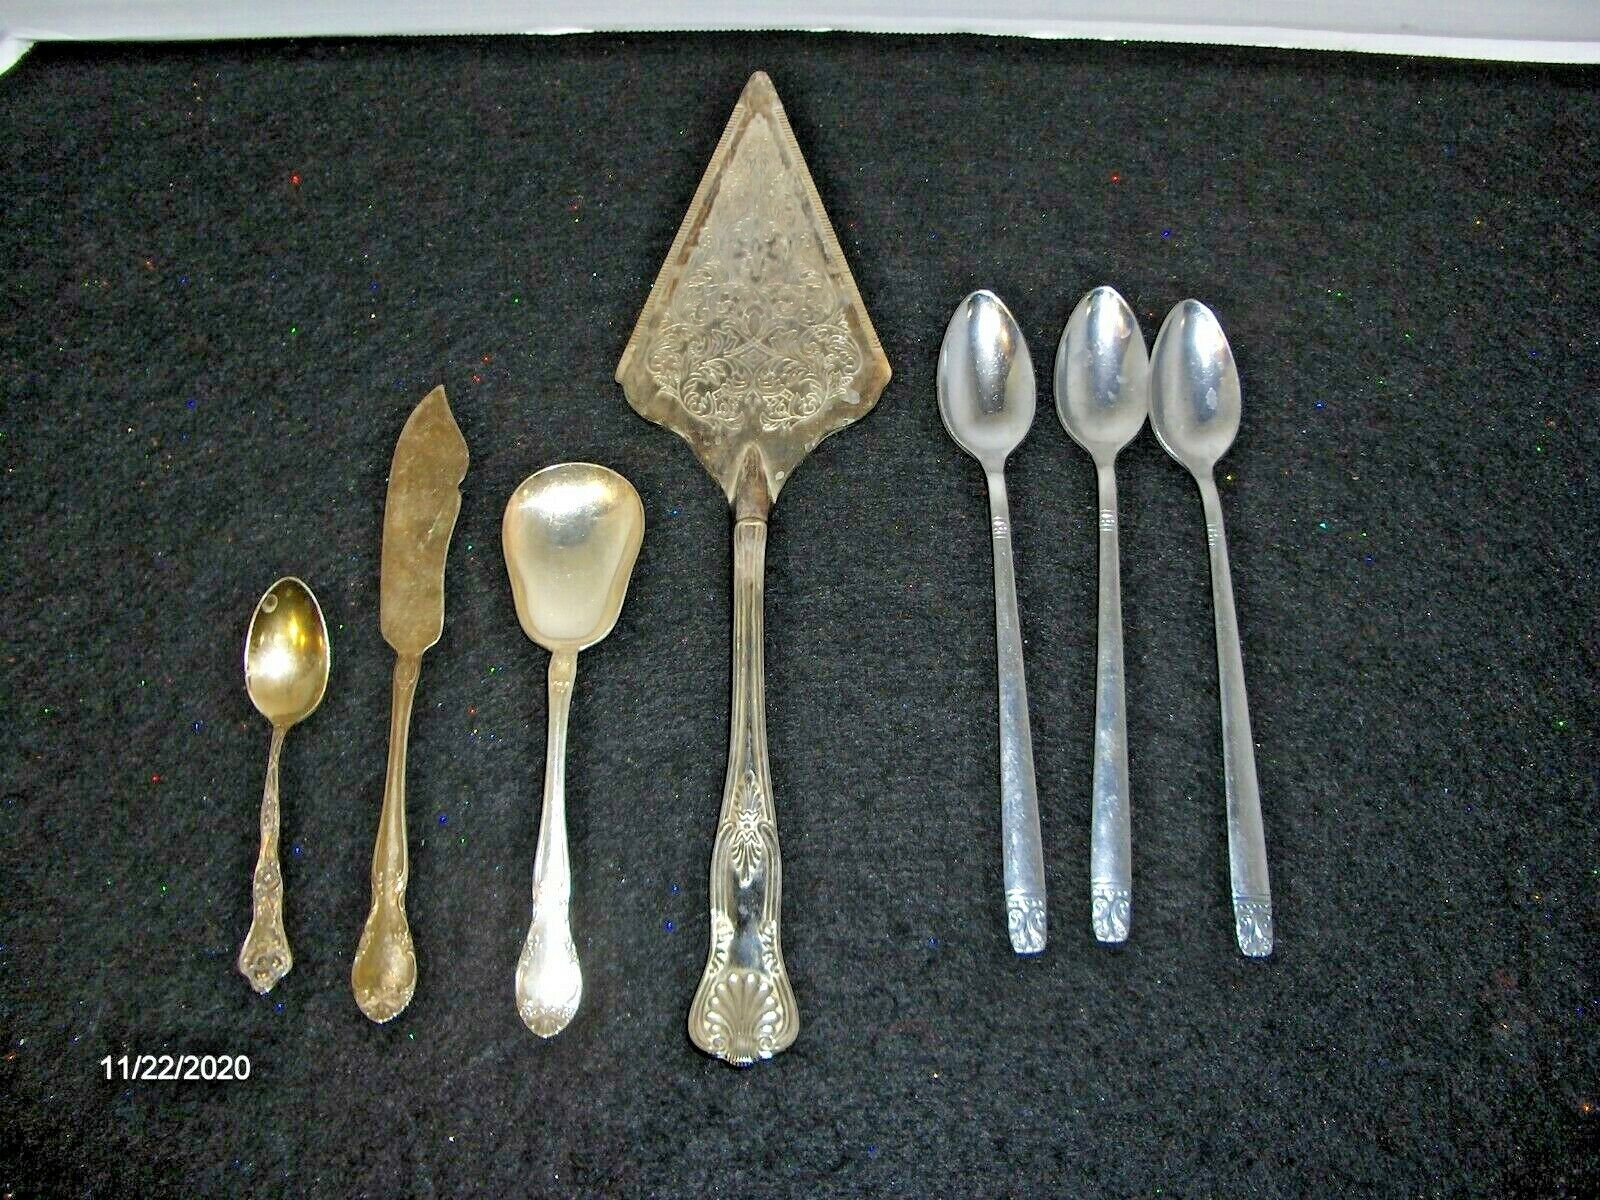 Gorham Silver Co. Silver Plate, Cake/Pie Server, Spoons Mixed Set 7 Pc. - $35.00